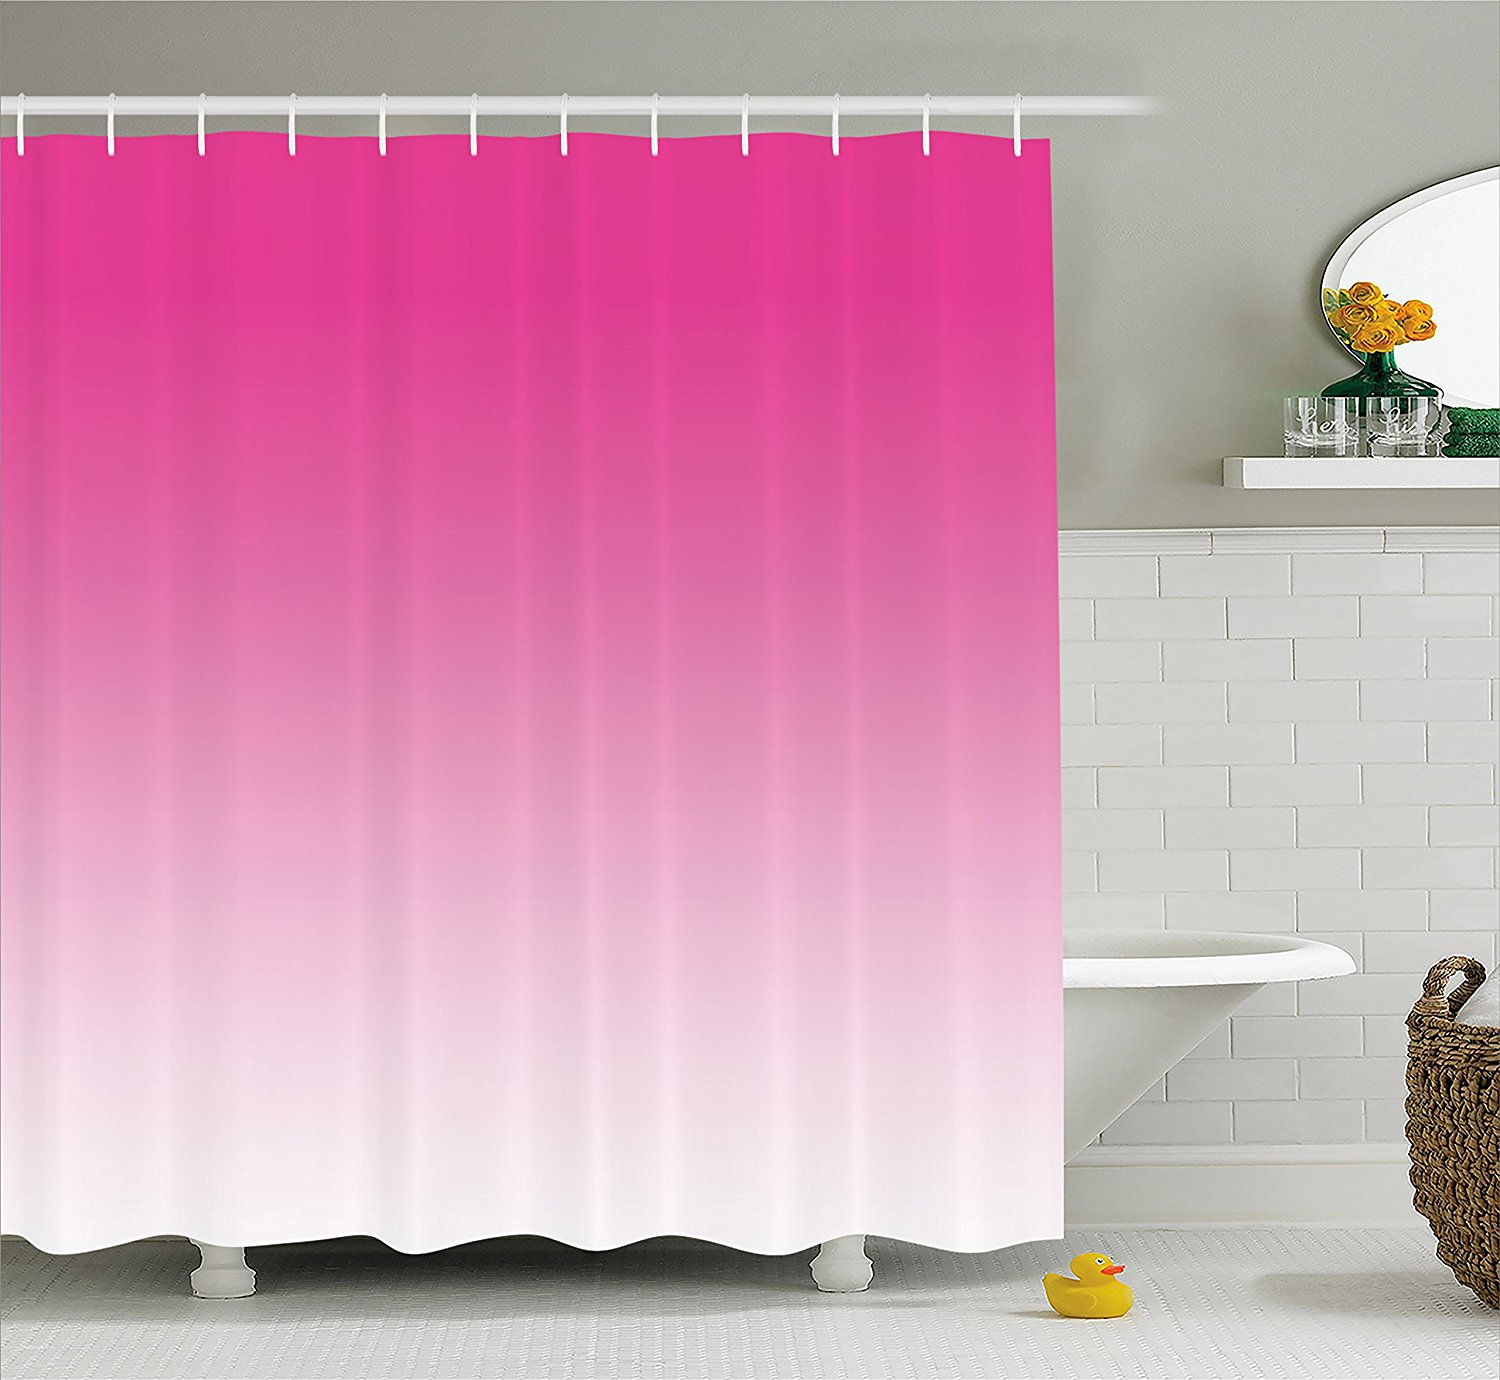 Get Quotations Ombre Shower Curtain By Ambesonne Hot Pink Candy And Cream Inspired Digital Design Print